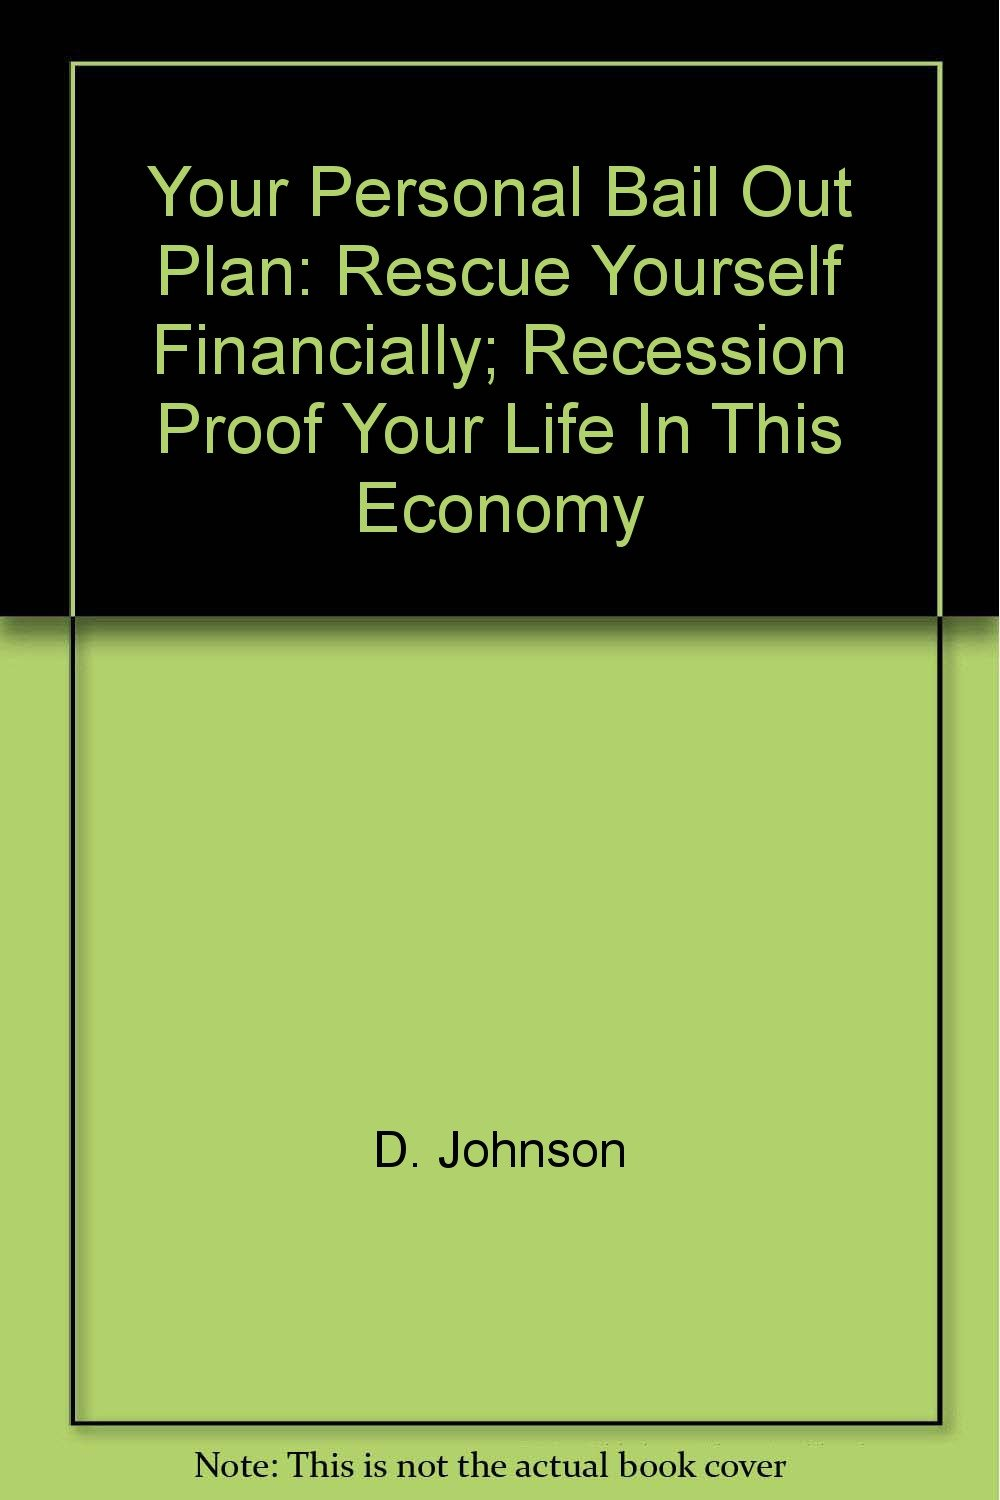 Your Personal Bail Out Plan: Rescue Yourself Financially; Recession Proof Your Life In This Economy ebook